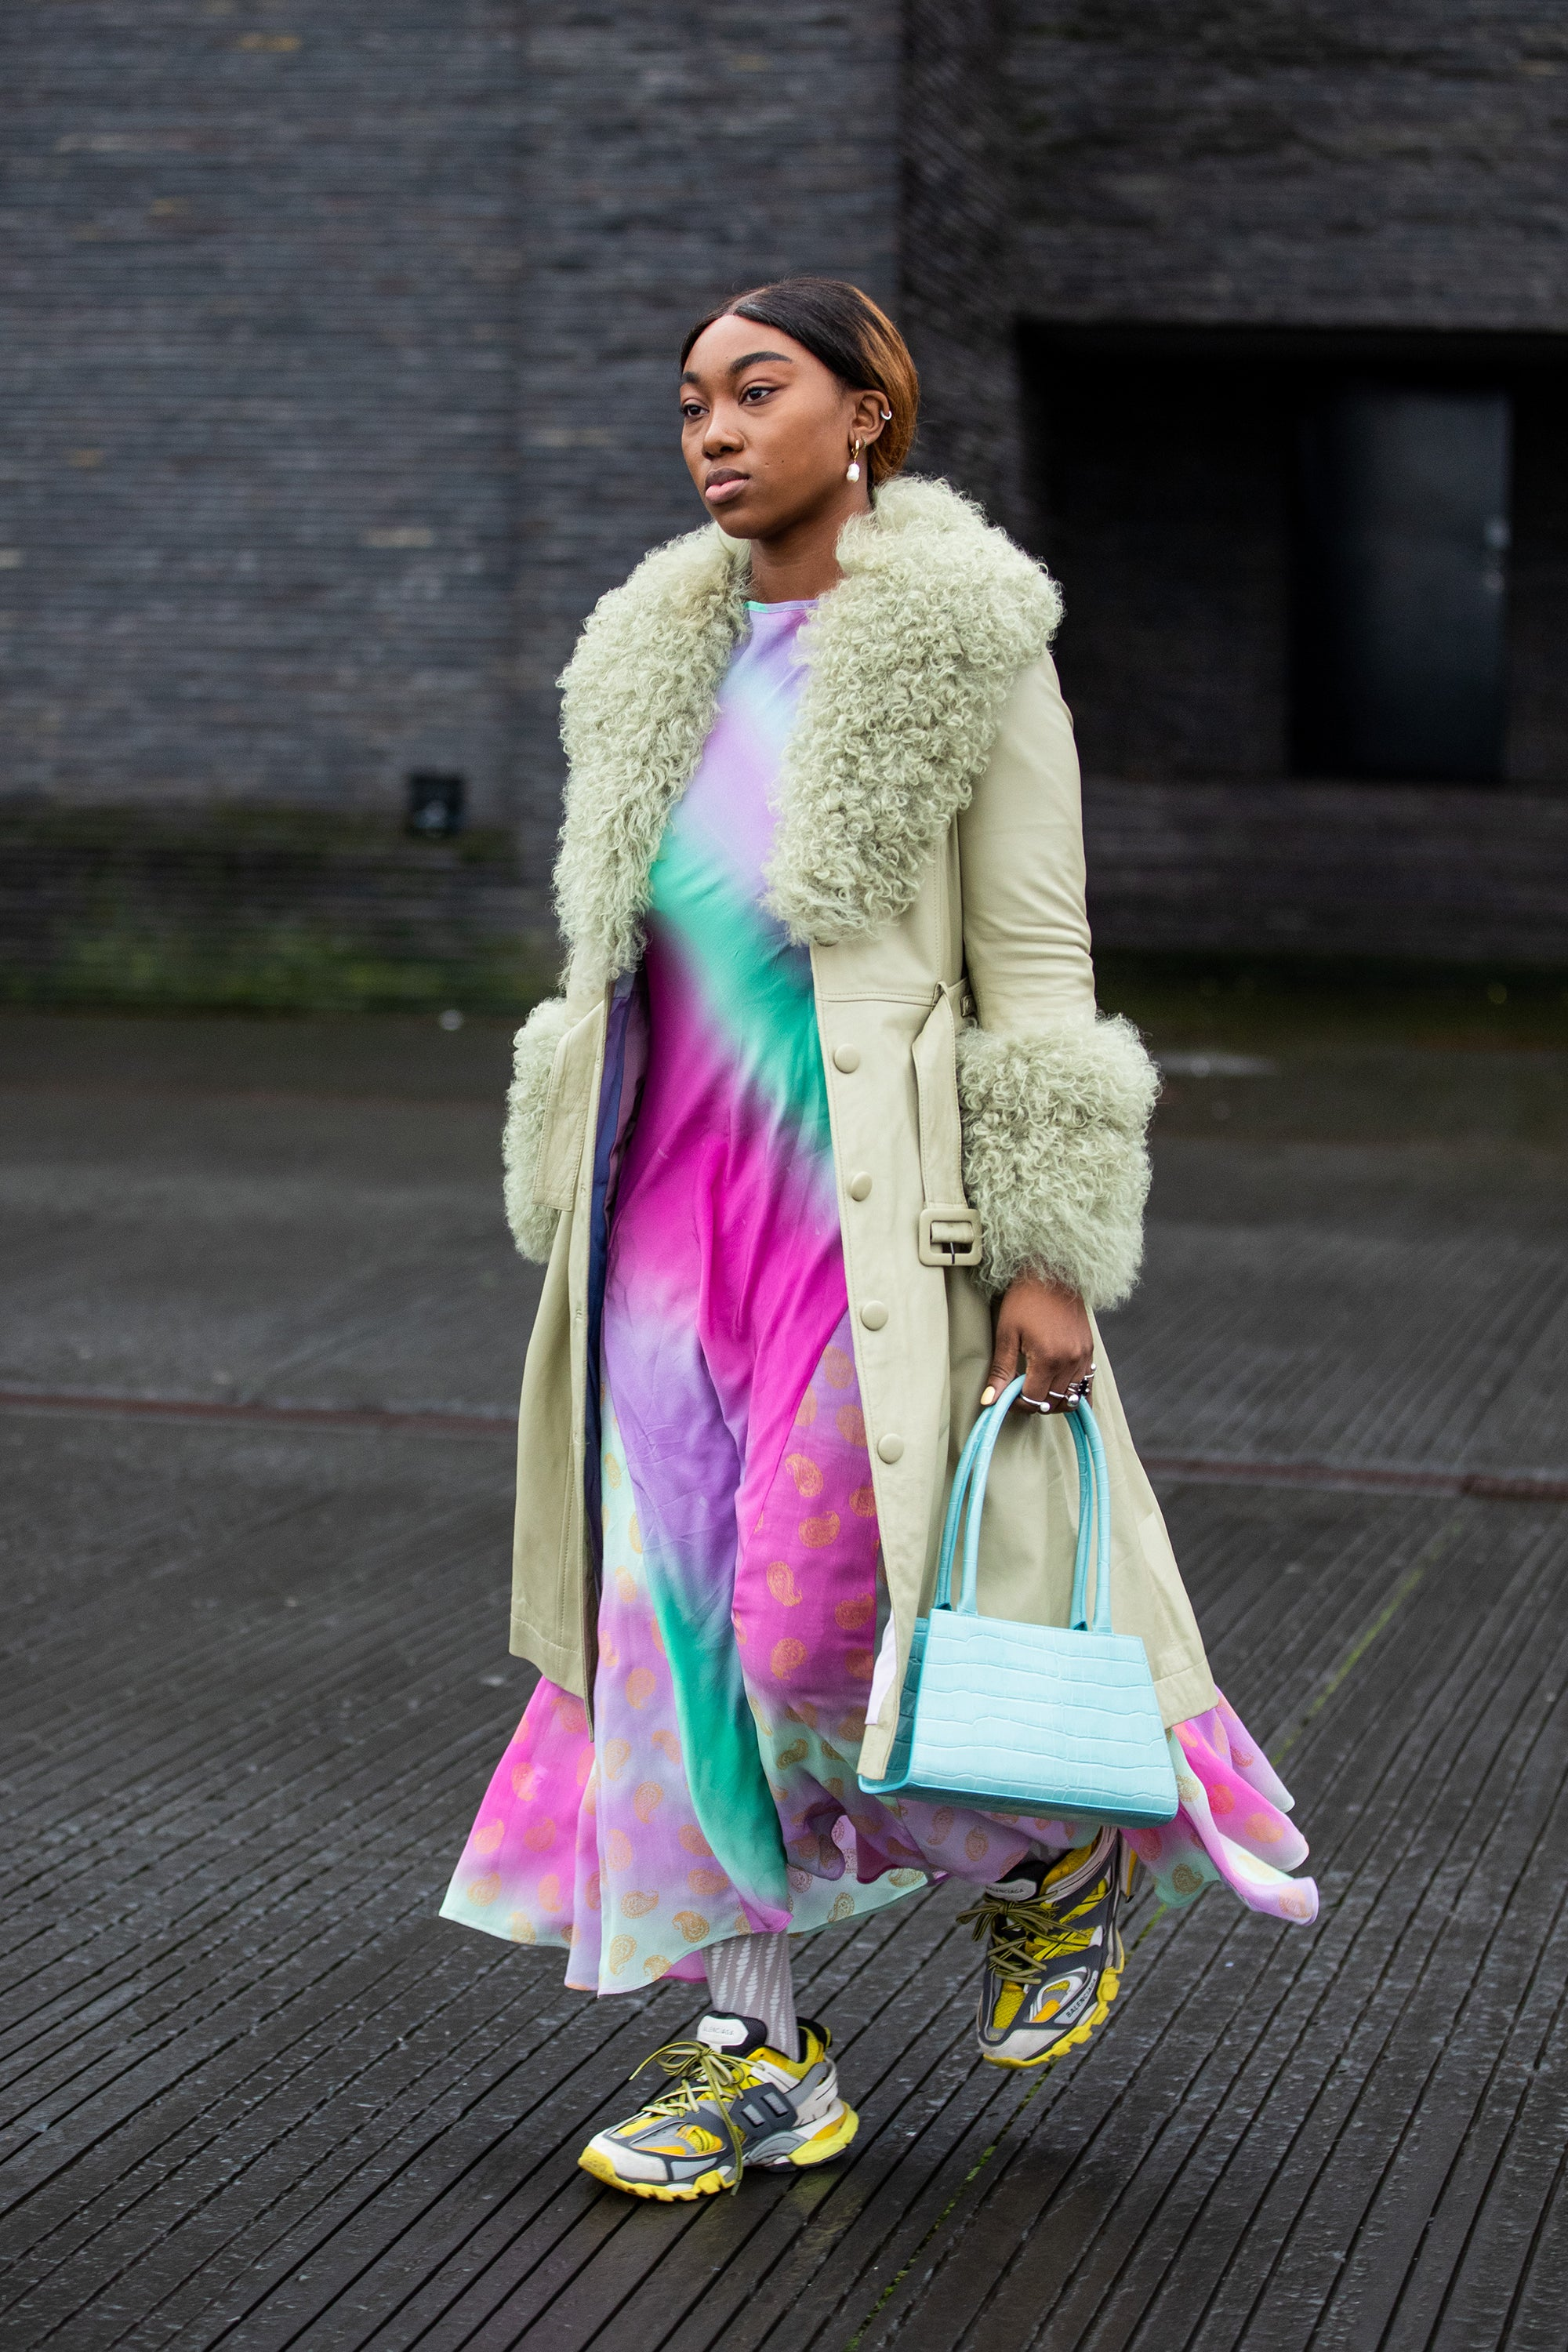 The Best Street Style Looks We Spotted At Copenhagen Fashion Week